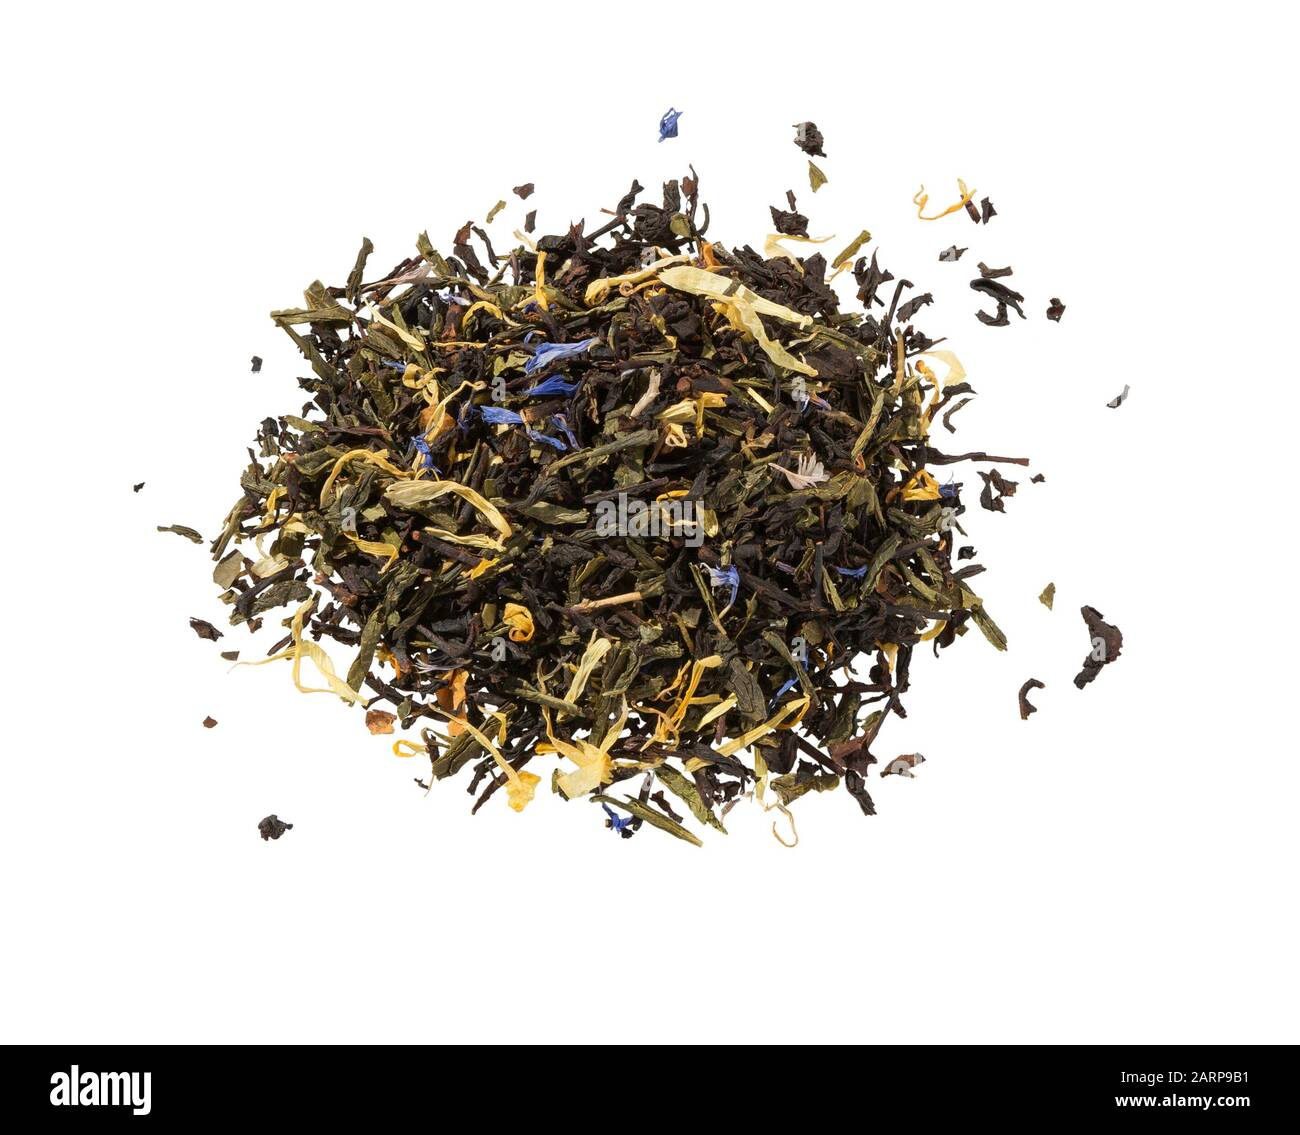 Dry tea with herbs isolated on white background. Mix green tea. Pile of mixed black and green tea with dry rosehip berries, calendula, petal. Stock Photo